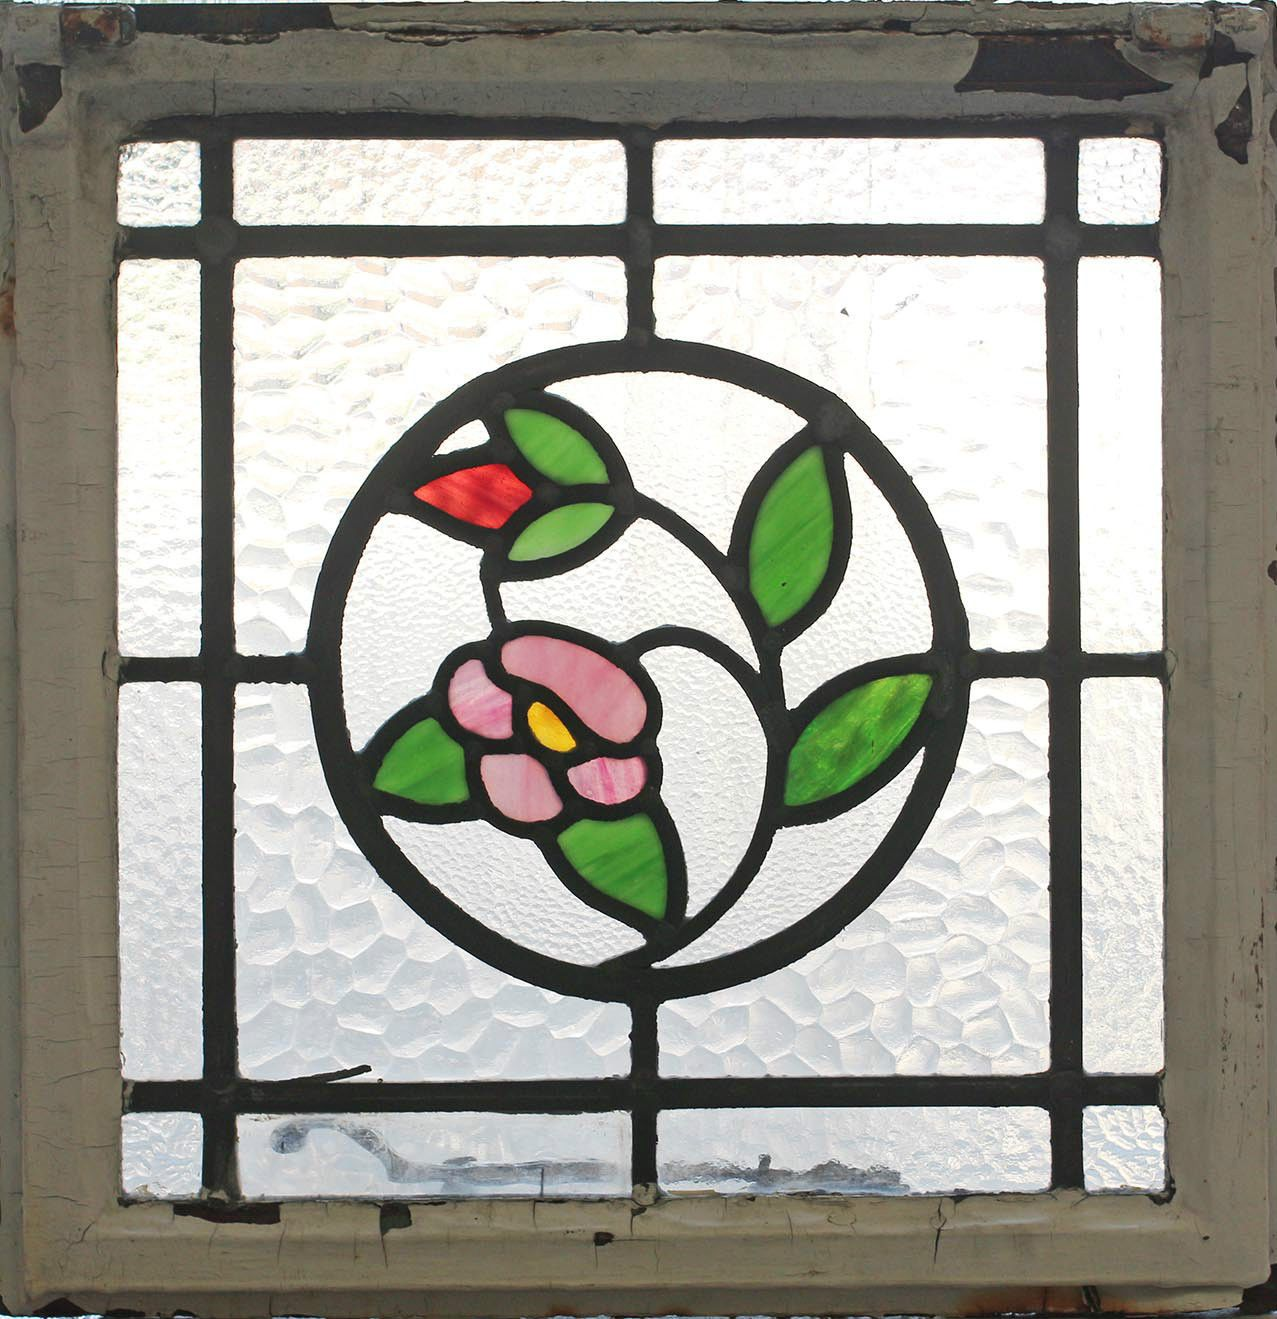 Leaded glass designs for windows - Antique Stained Glass Window Four Color Floral Design Ebay